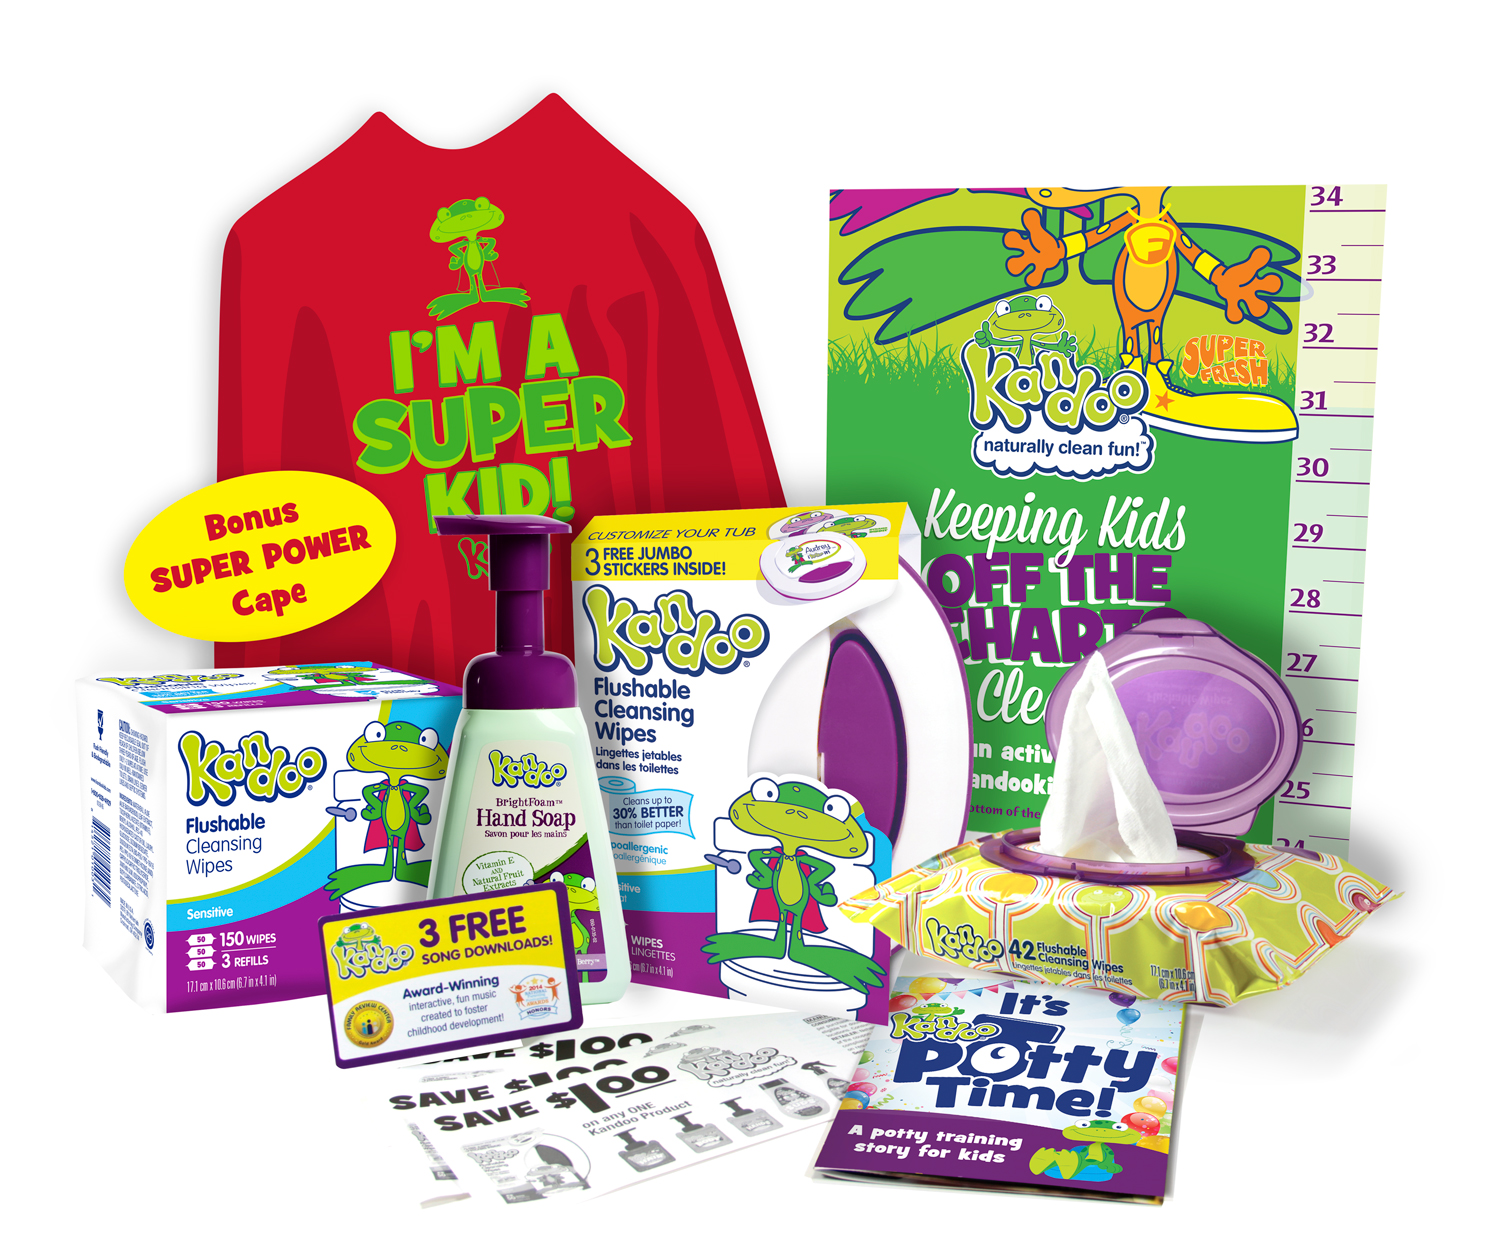 Kandoo Potty time pack with all products included. Bonus super power cape